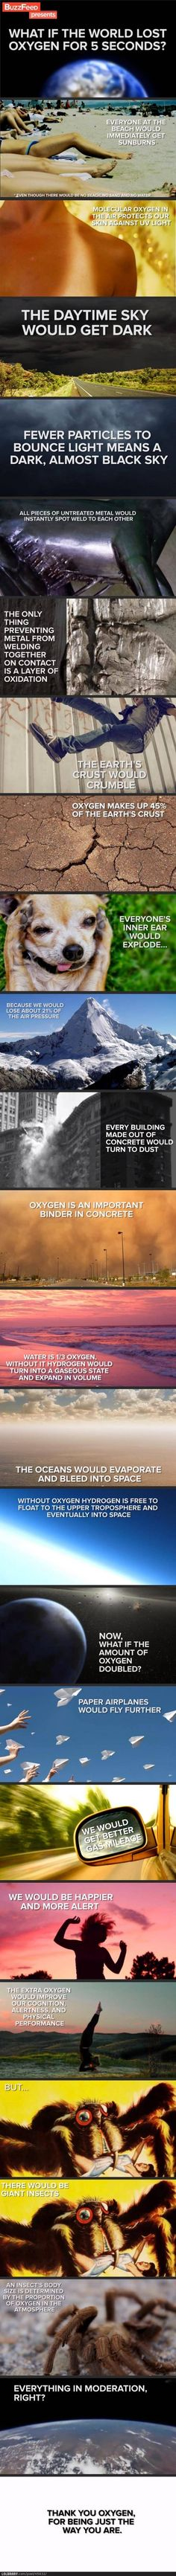 Oxygen, don't take it for granted. Giant spiders and instant sunburns are bad, mmmmkay?